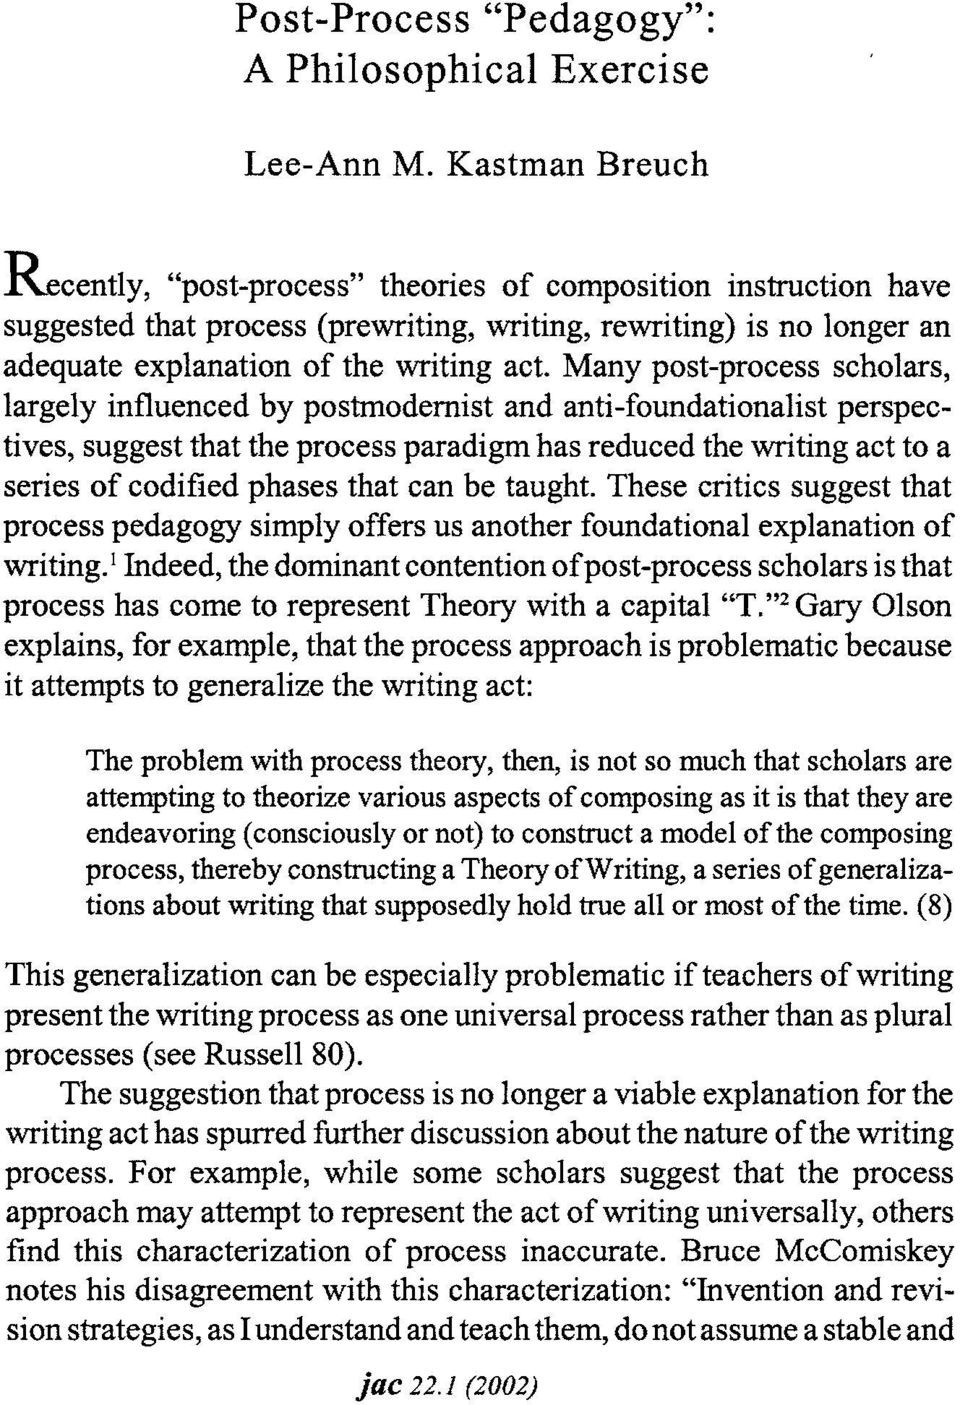 Many post-process scholars, largely influenced by postmodernist and anti-foundationalist perspectives, suggest that the process paradigm has reduced the writing act to a series of codified phases